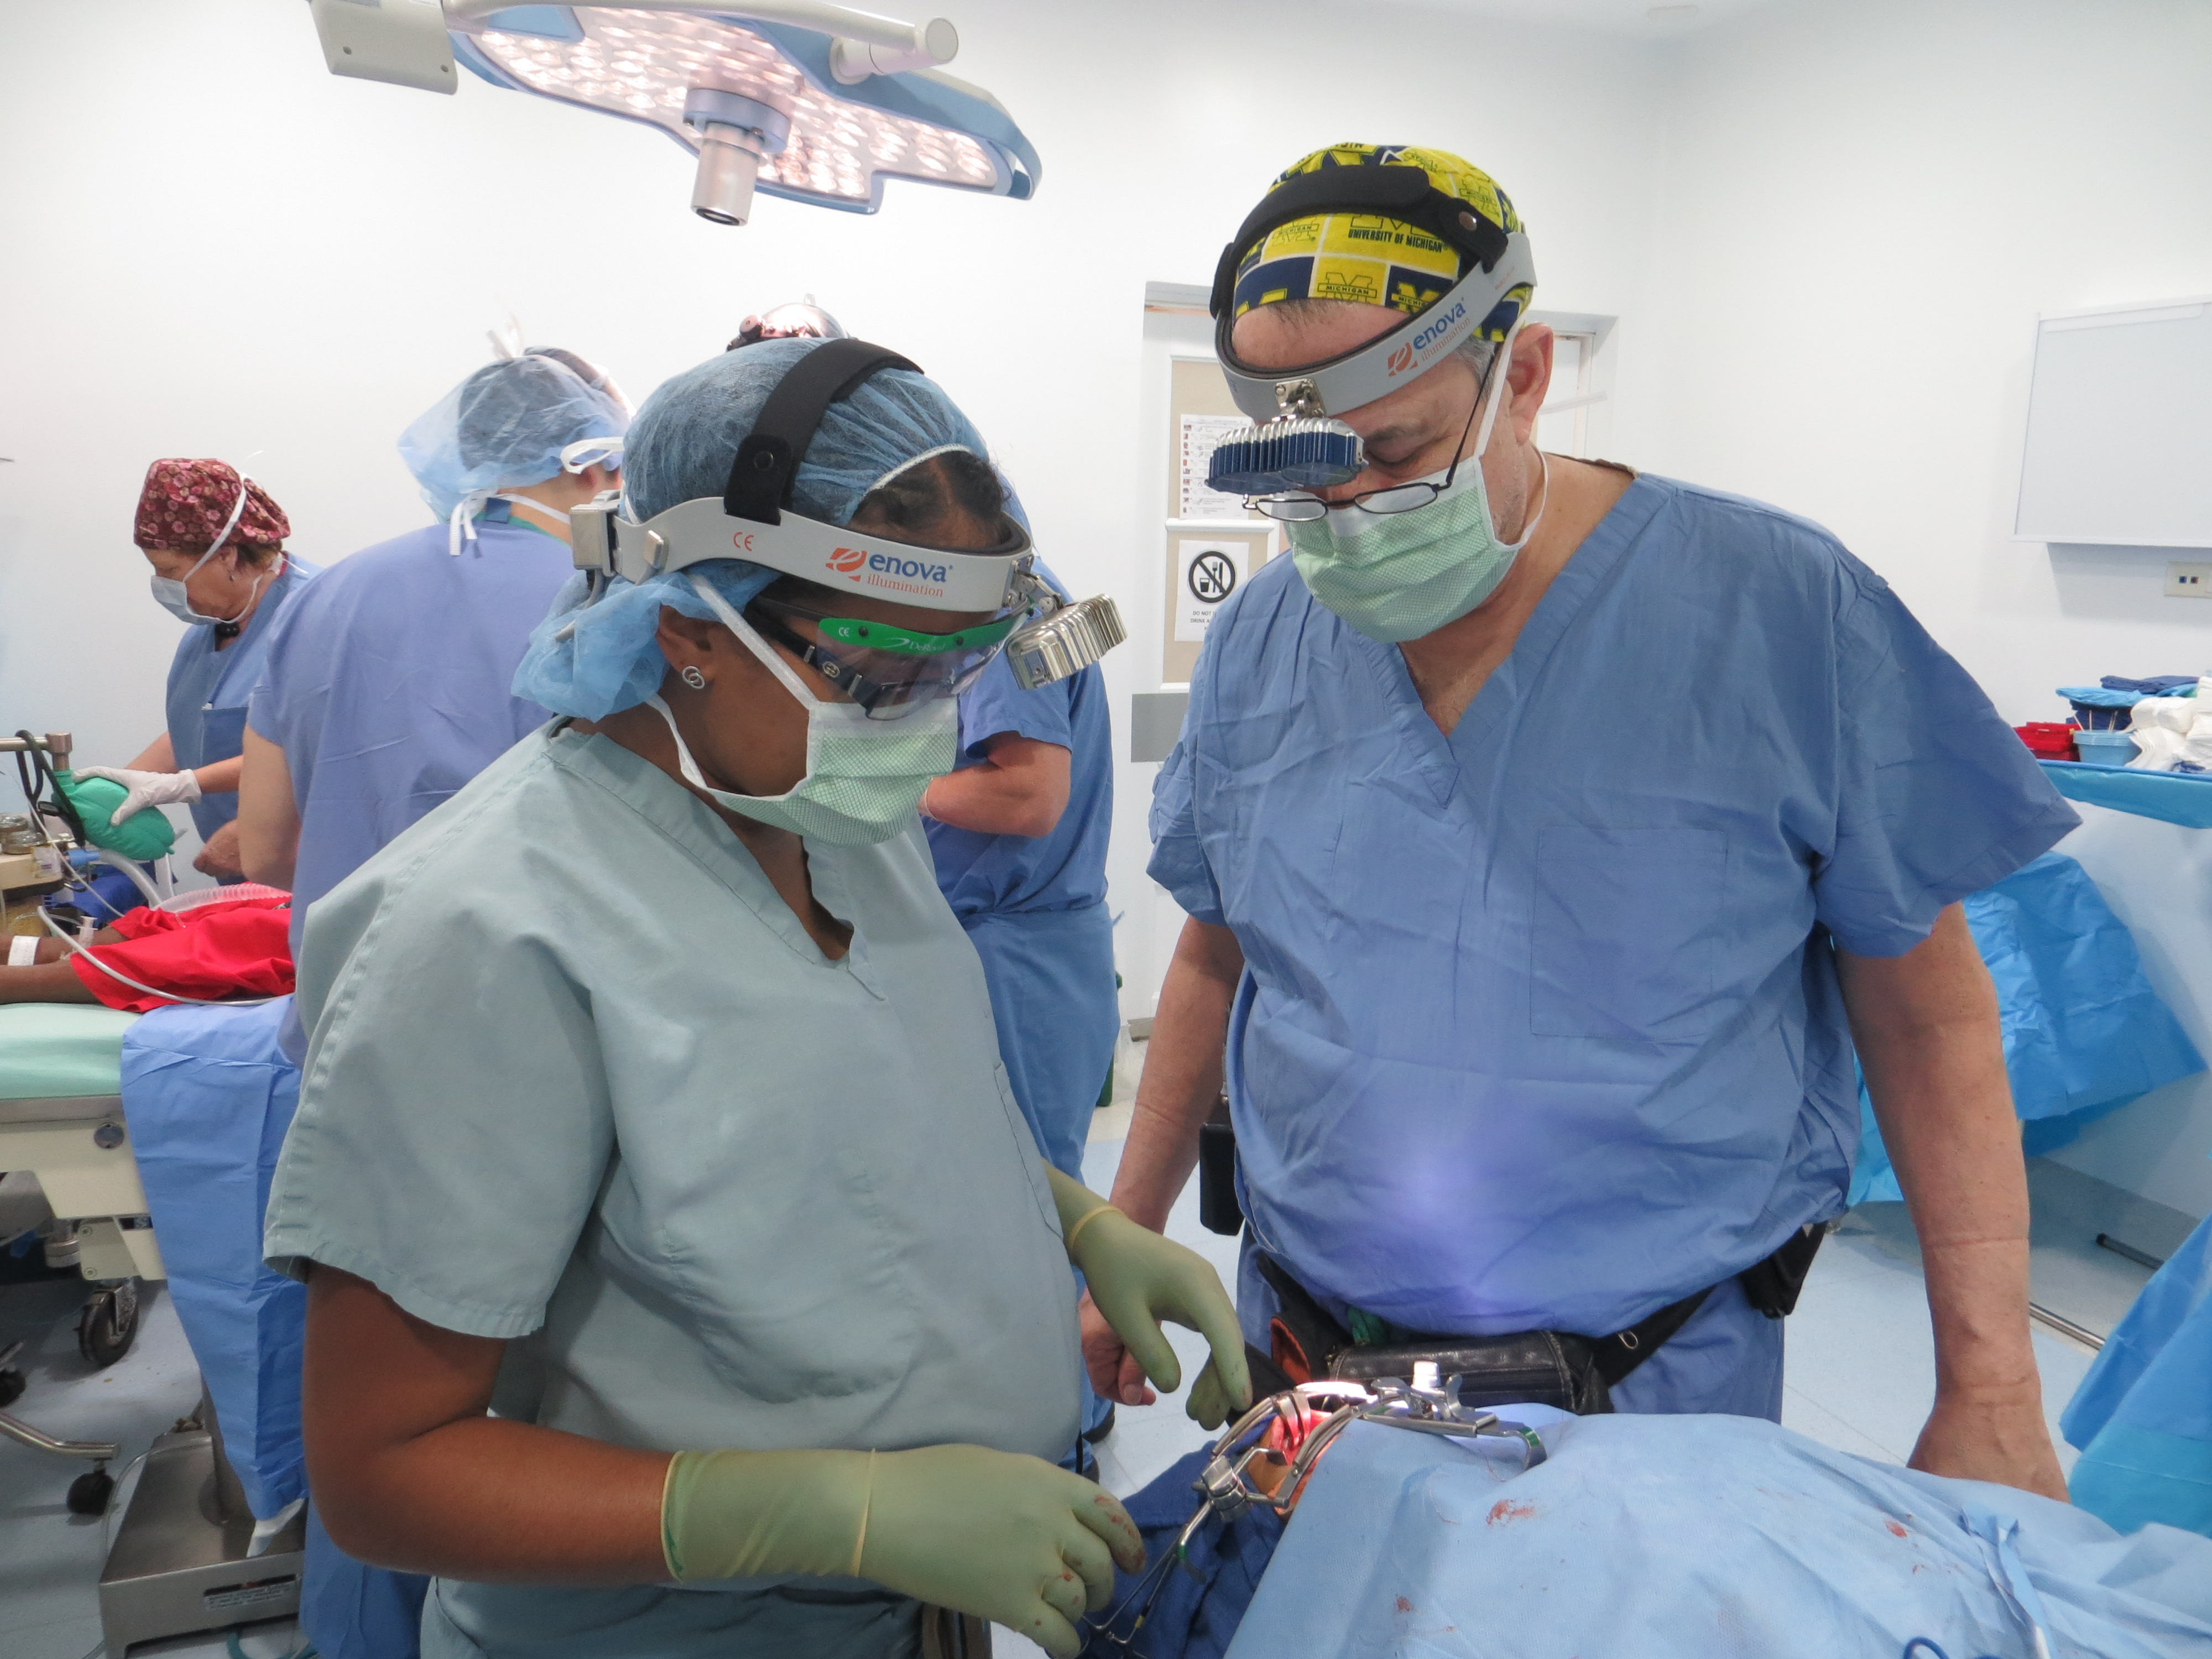 Dr. Sears adn Dr. Gilman in the operating room in Colombia